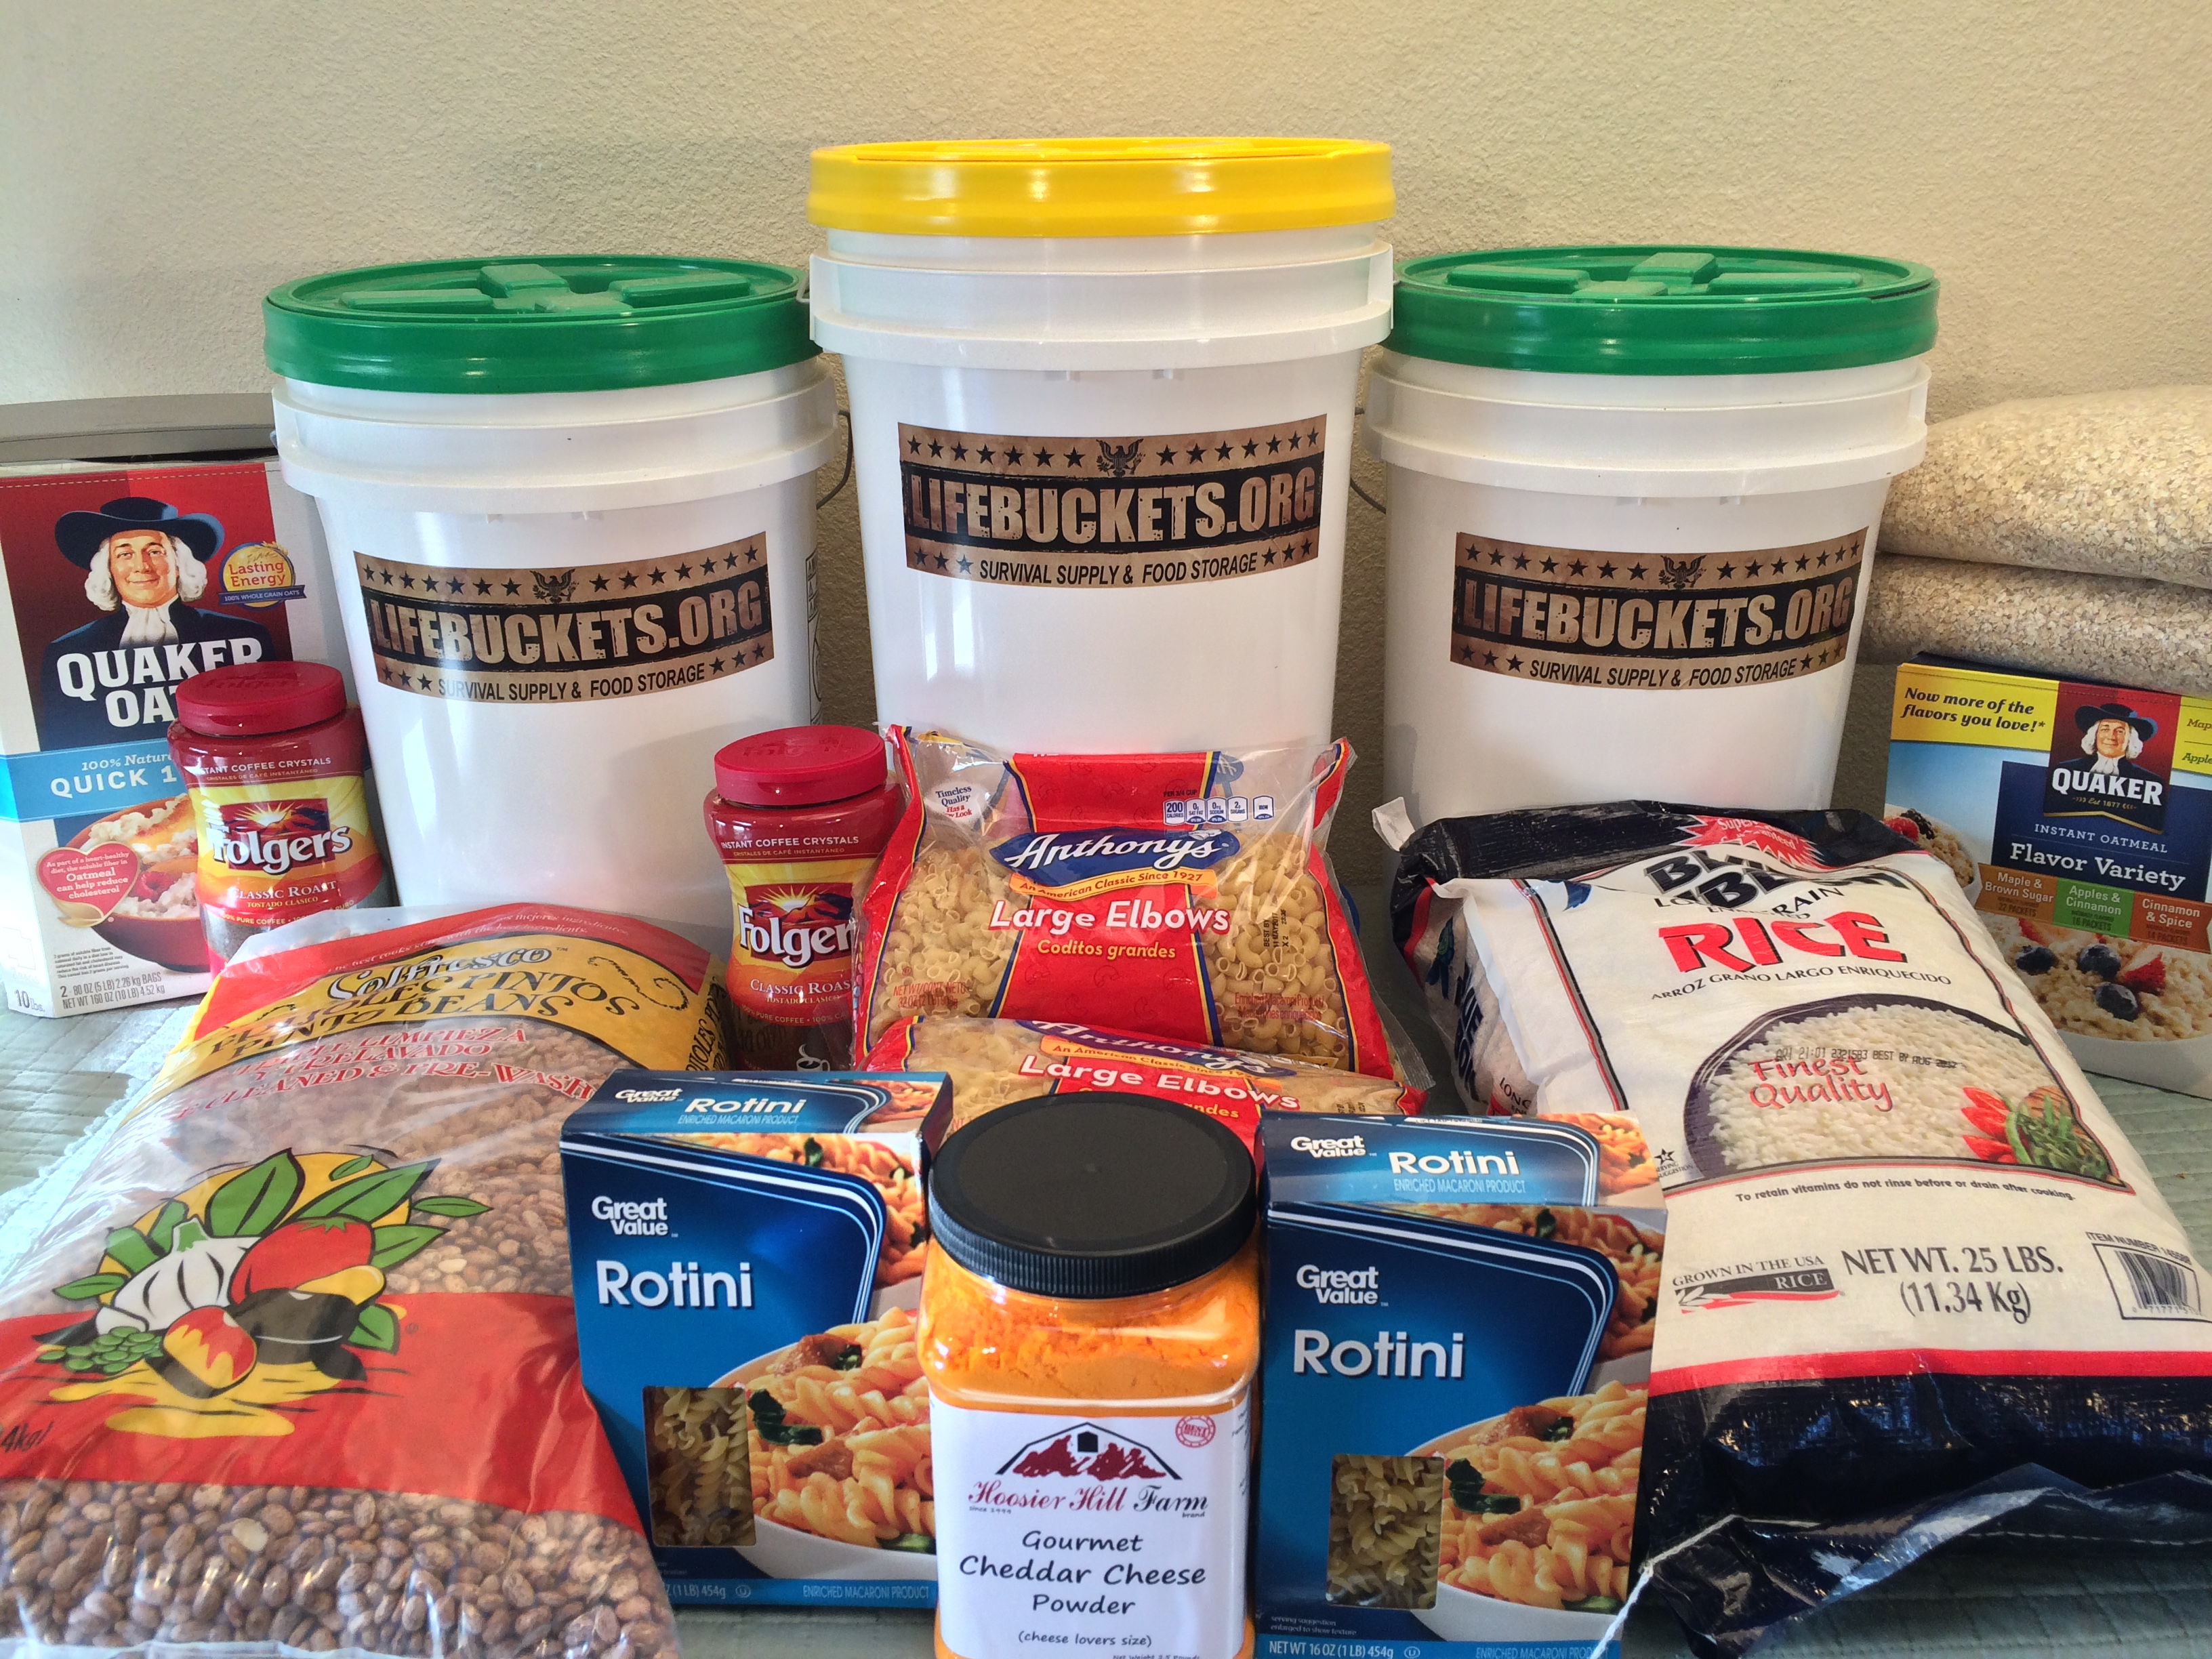 Life Buckets emergency food /supply storage is a San Diego based company that offers affordable quality long lasting foods with a 25 year shelf life. & LIFEBUCKETS u2013 Emergency Food Storage